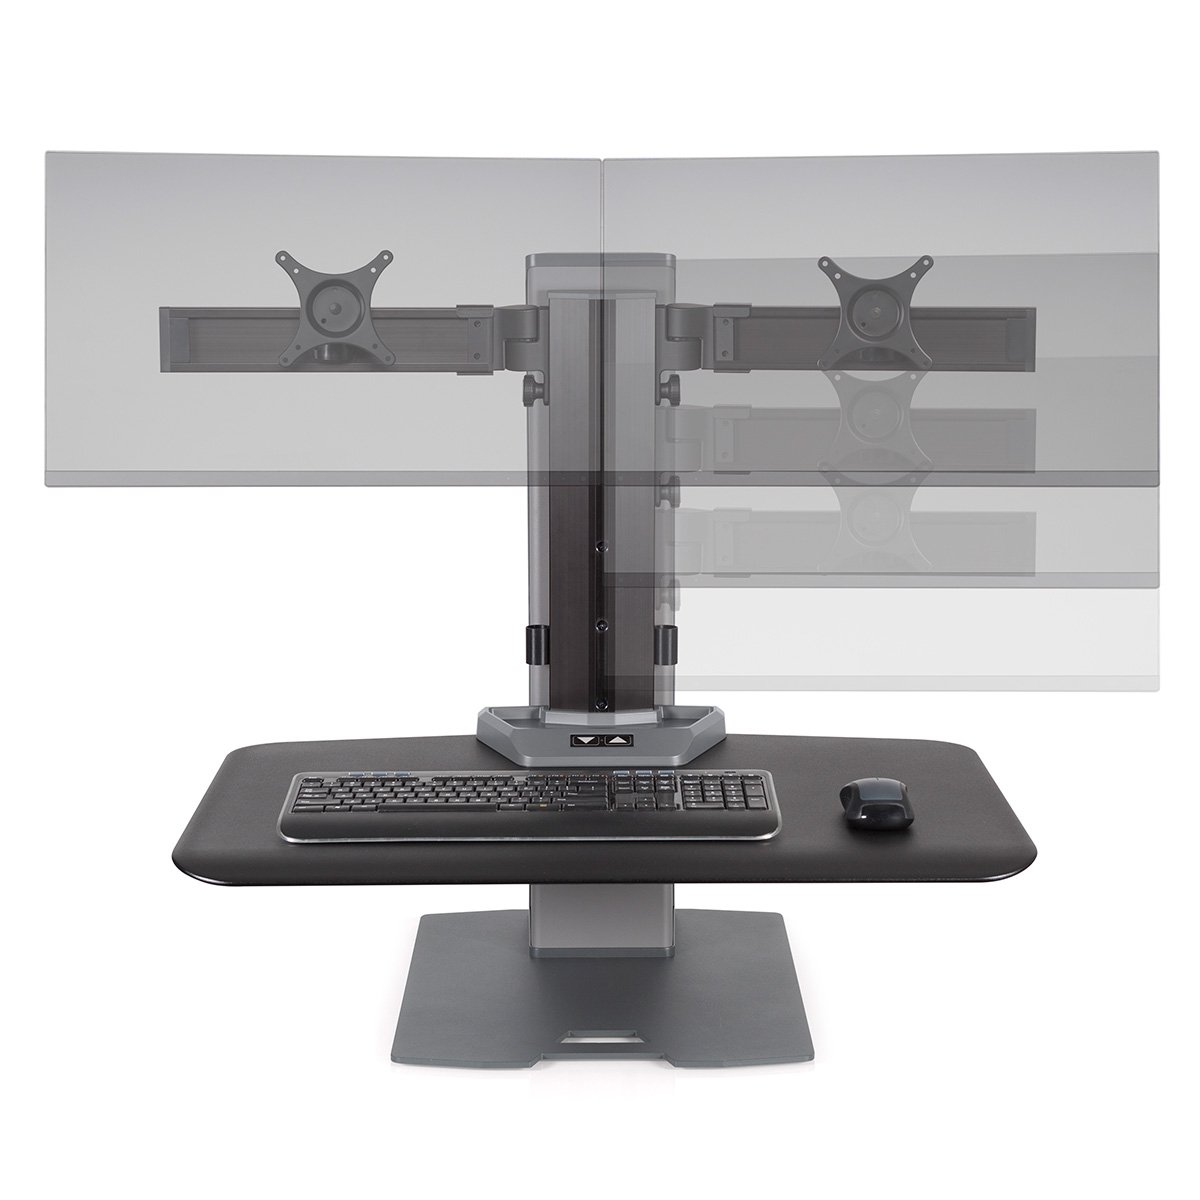 Supports Multiple Screens